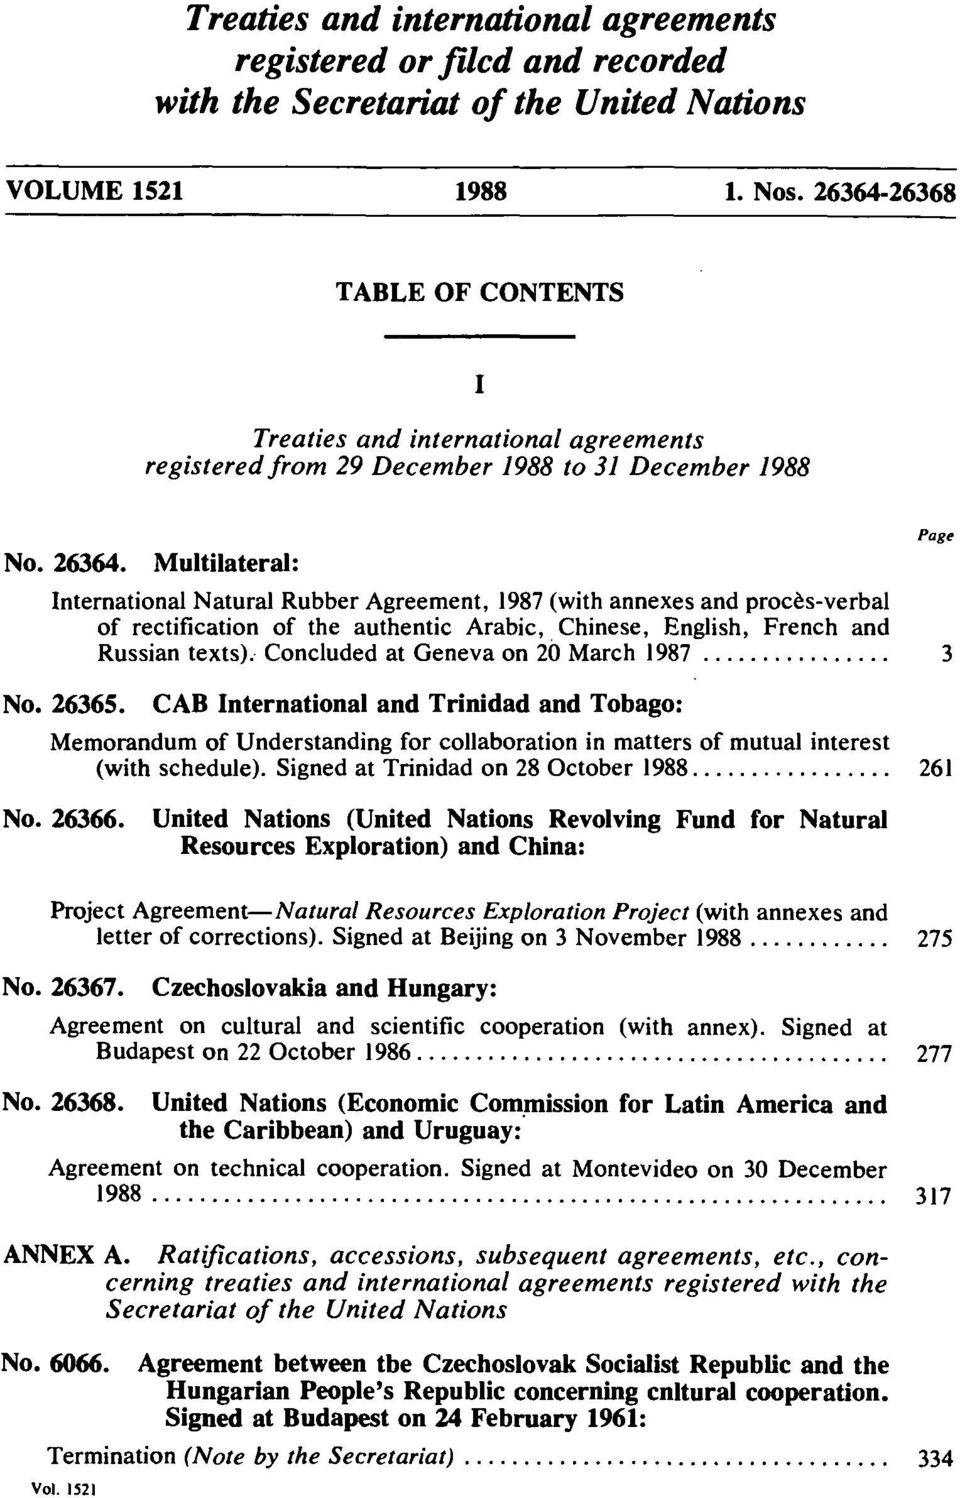 Multilateral: International Natural Rubber Agreement, 1987 (with annexes and procs-verbal of rectification of the authentic Arabic, Chinese, English, French and Russian texts).